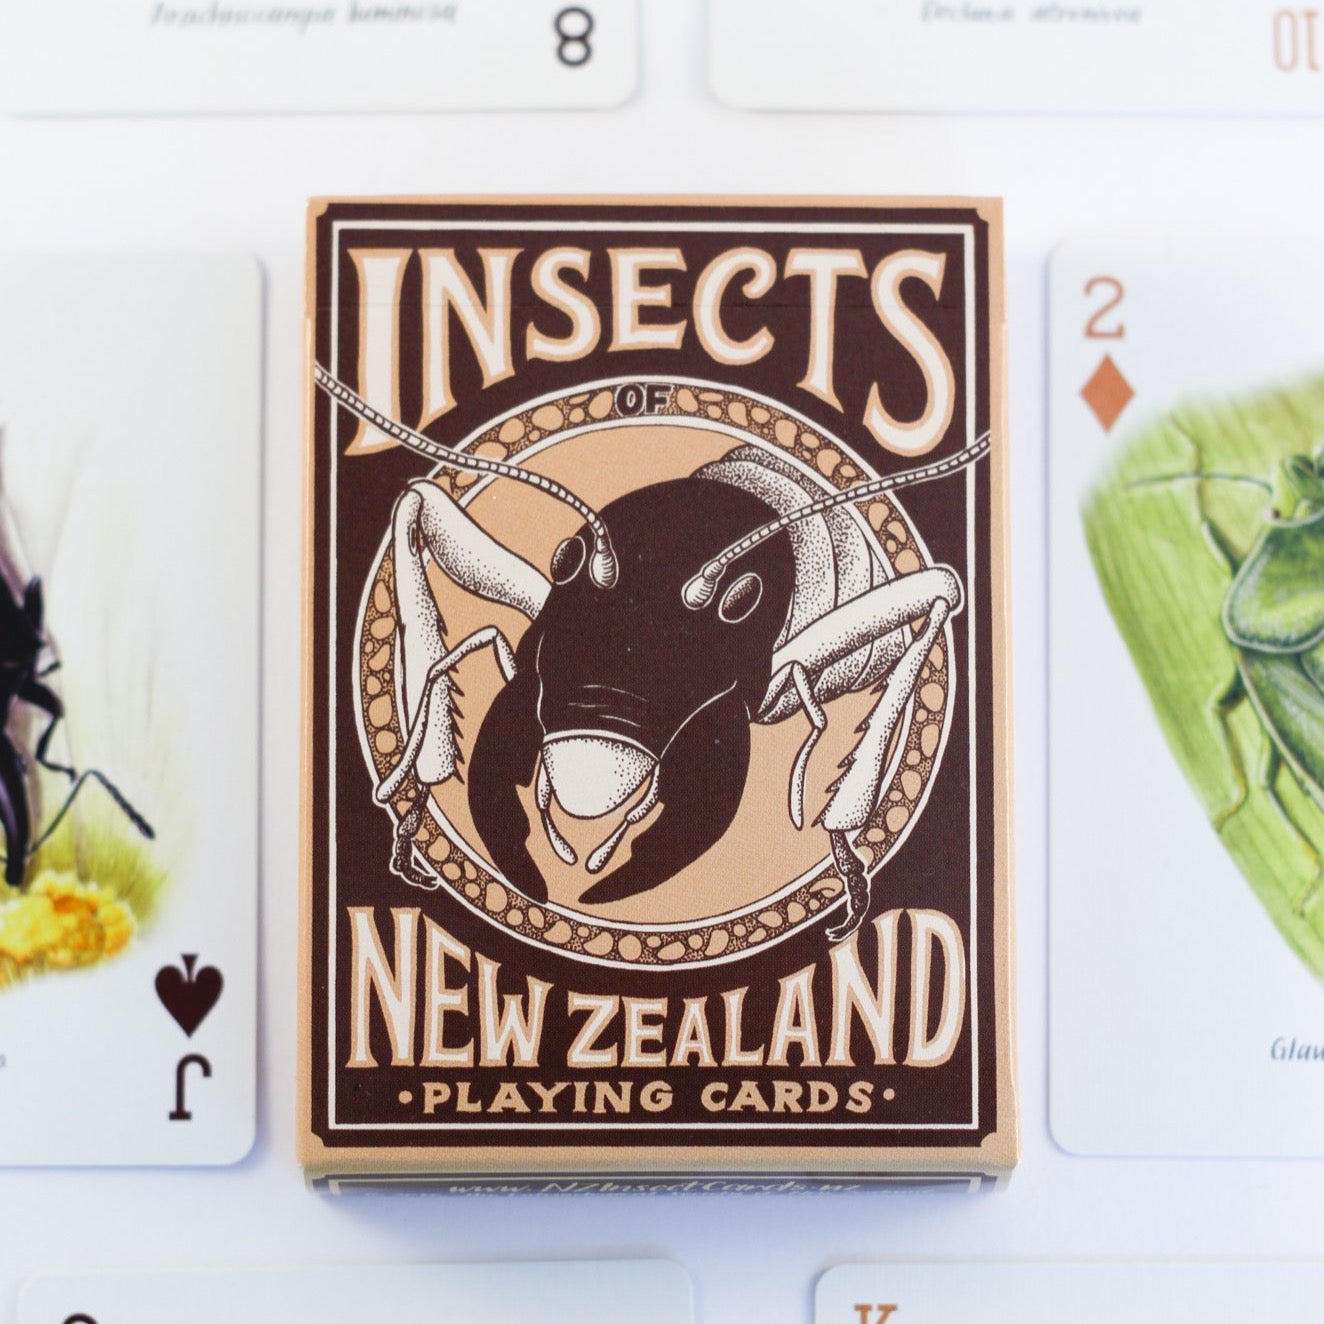 Insects of NZ card deck